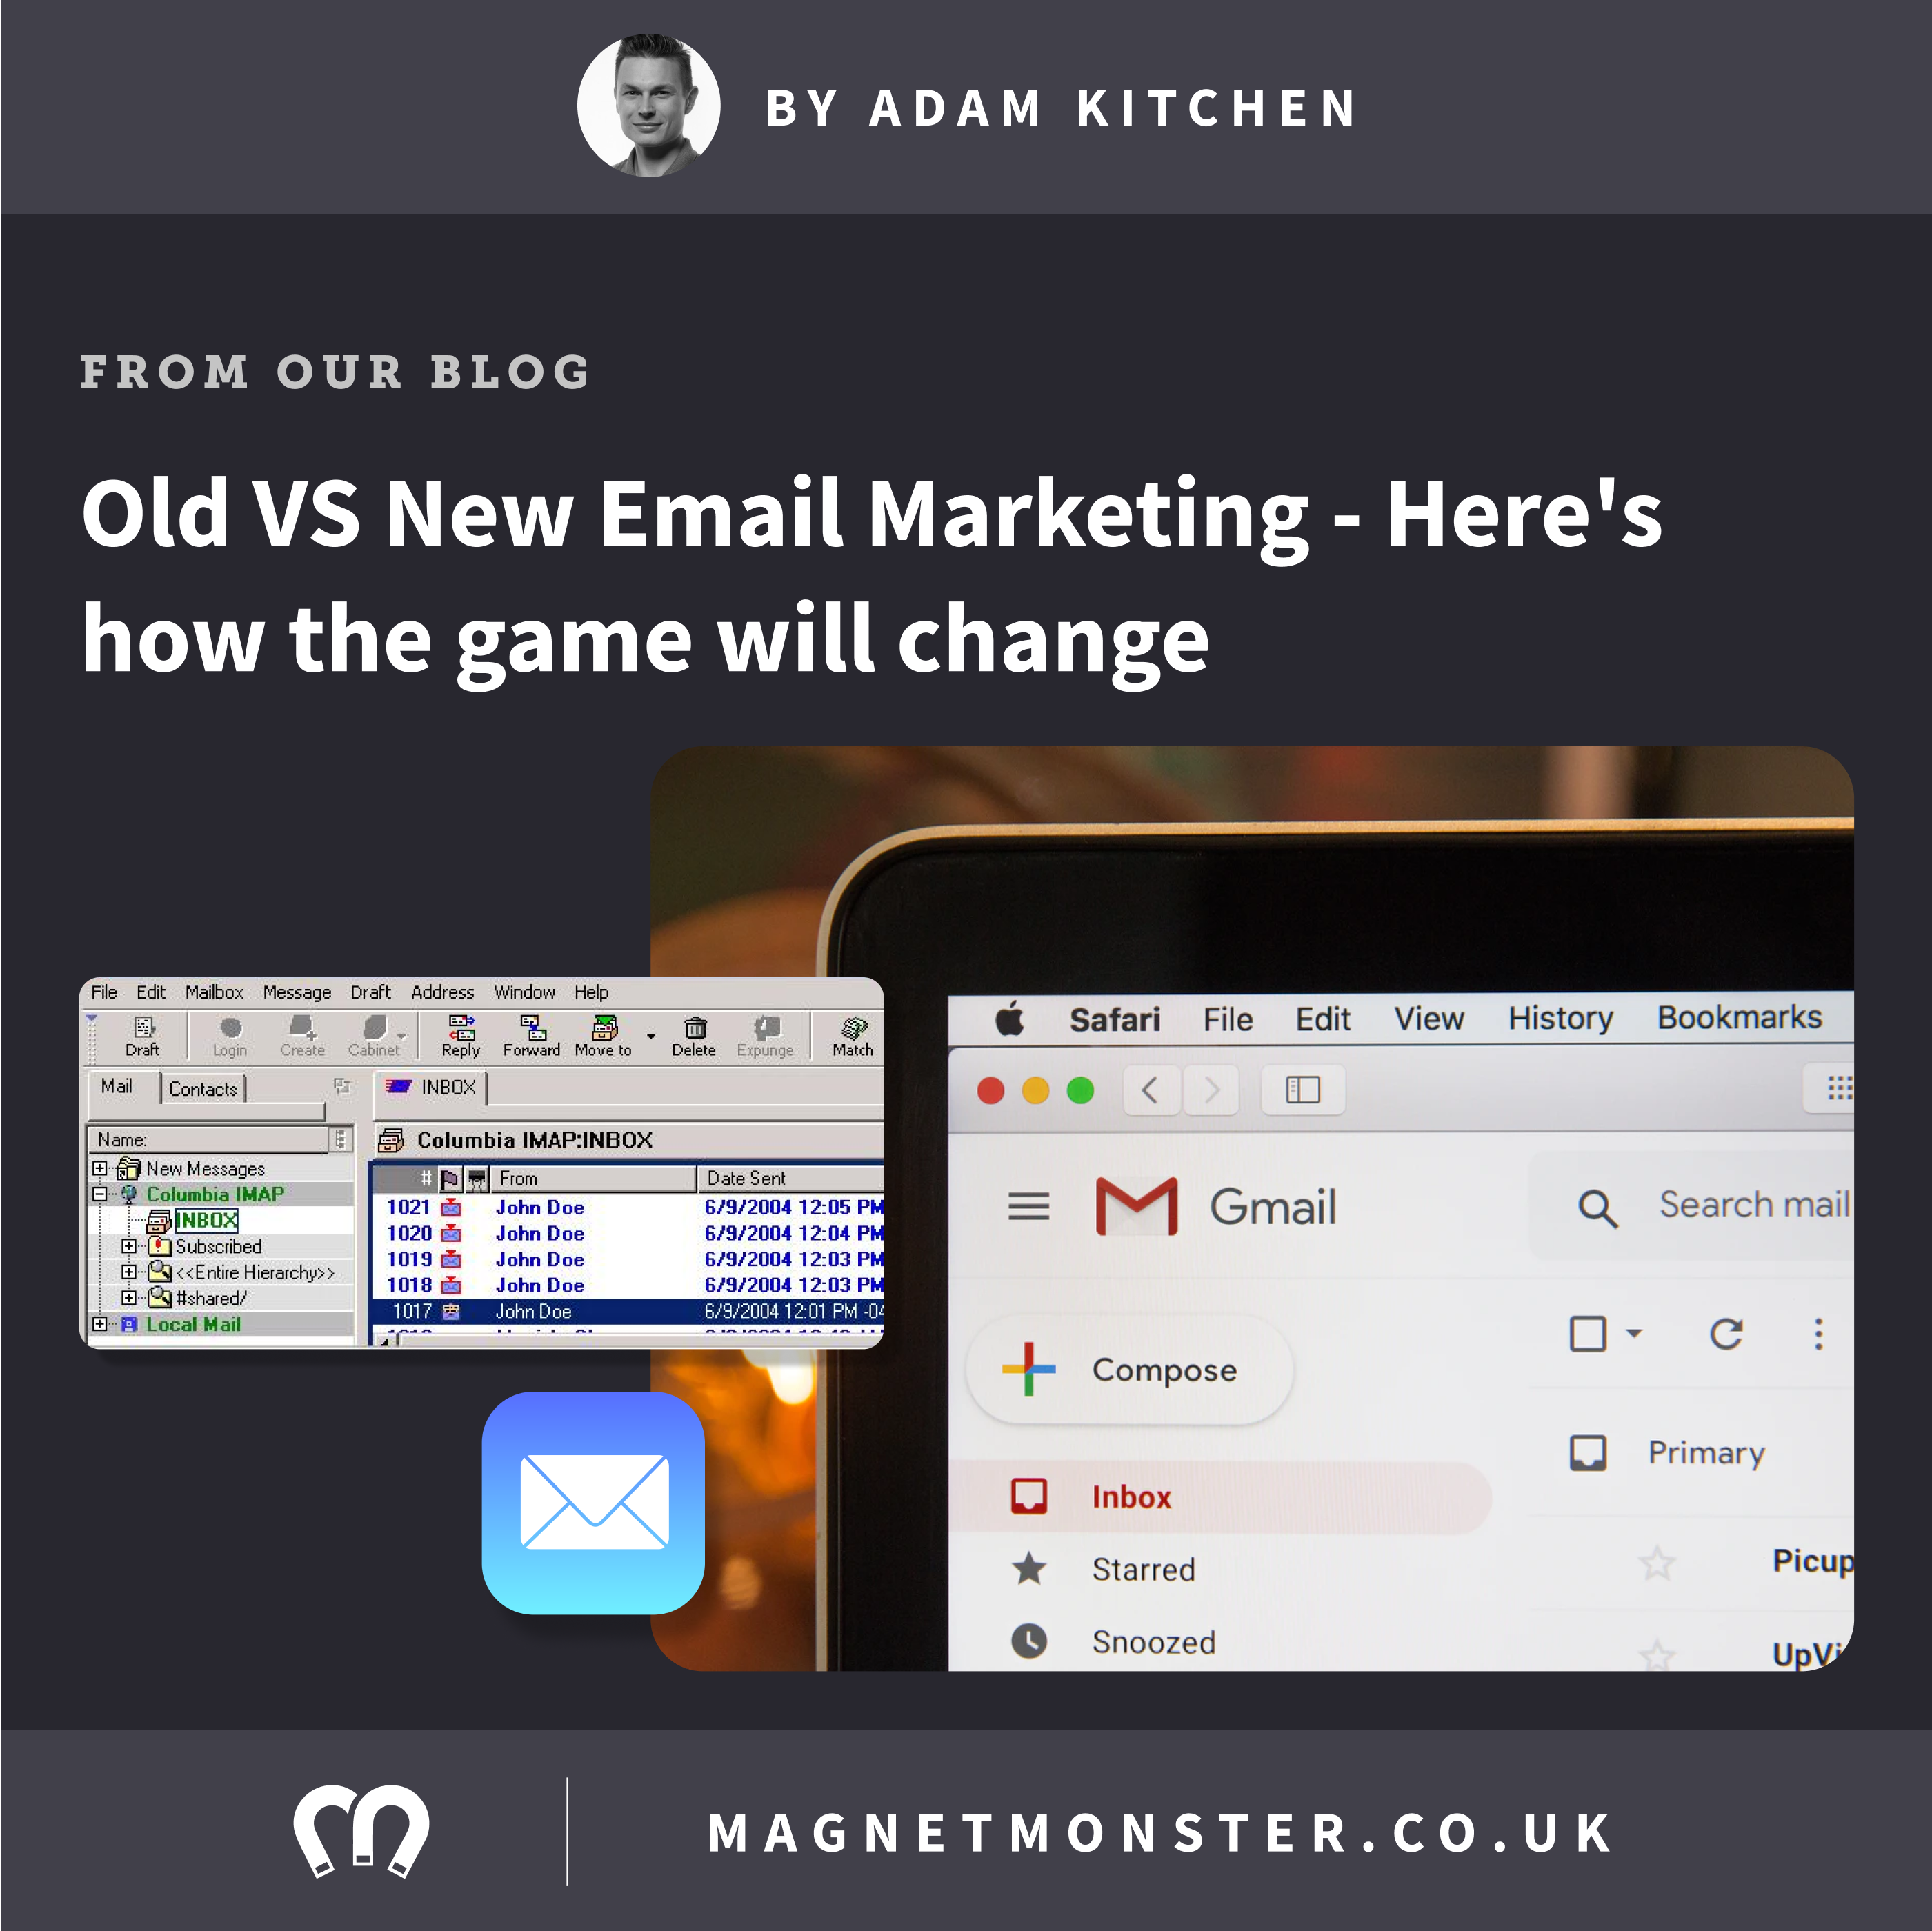 Email Marketing of the Past VS Future